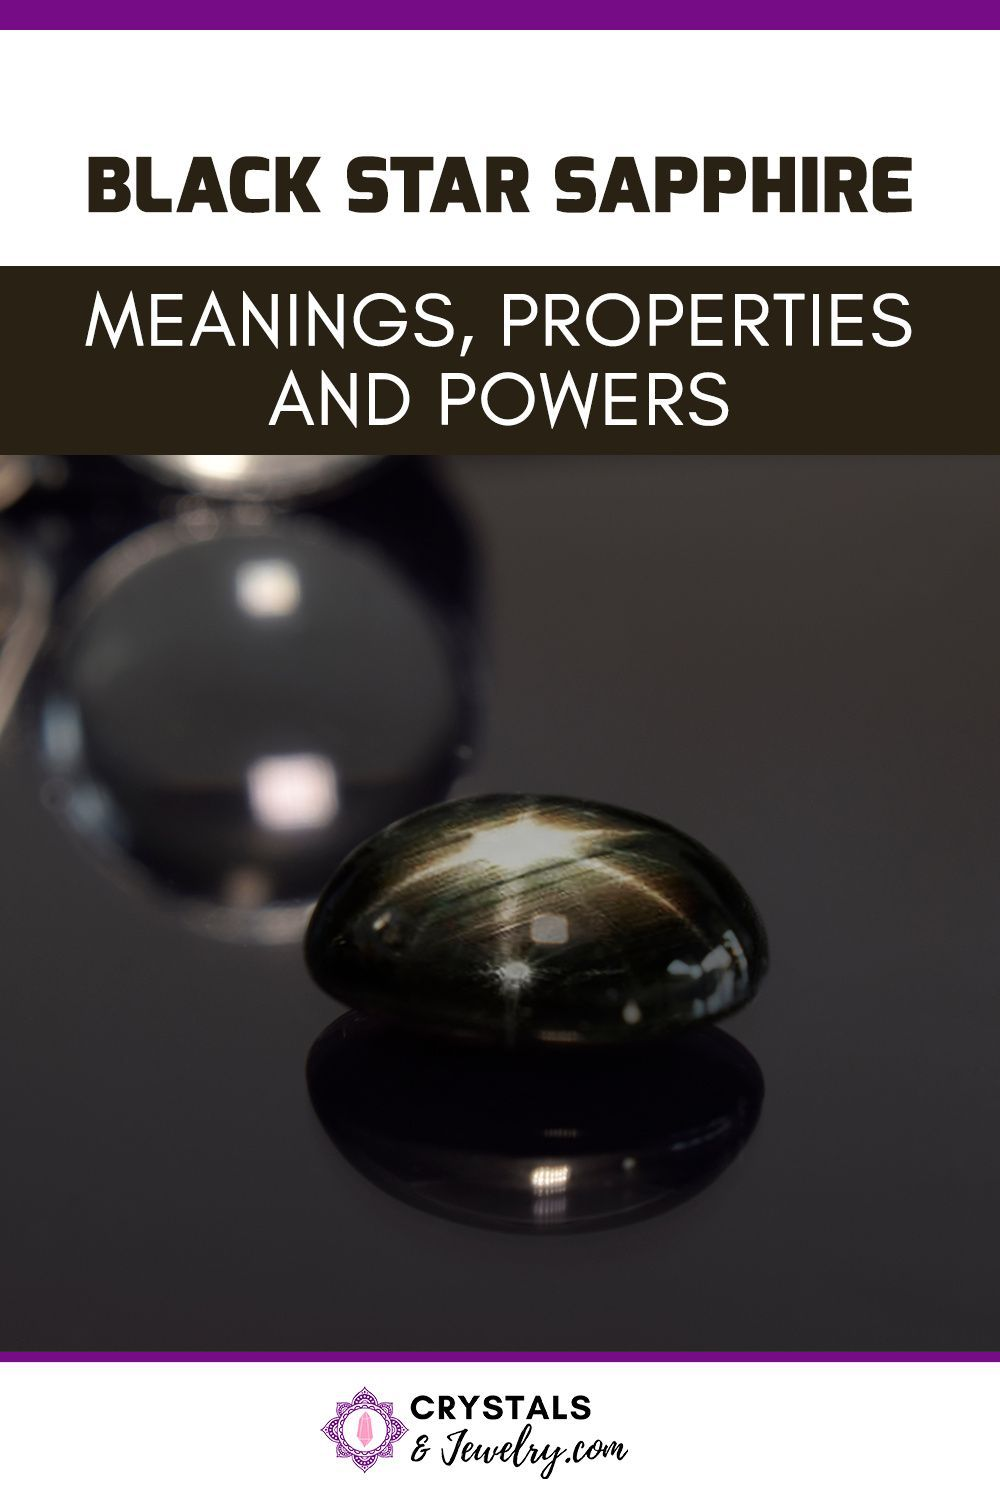 Black Star Sapphire Meanings Properties And Powers In 2020 Star Sapphire Black Star Power Crystals